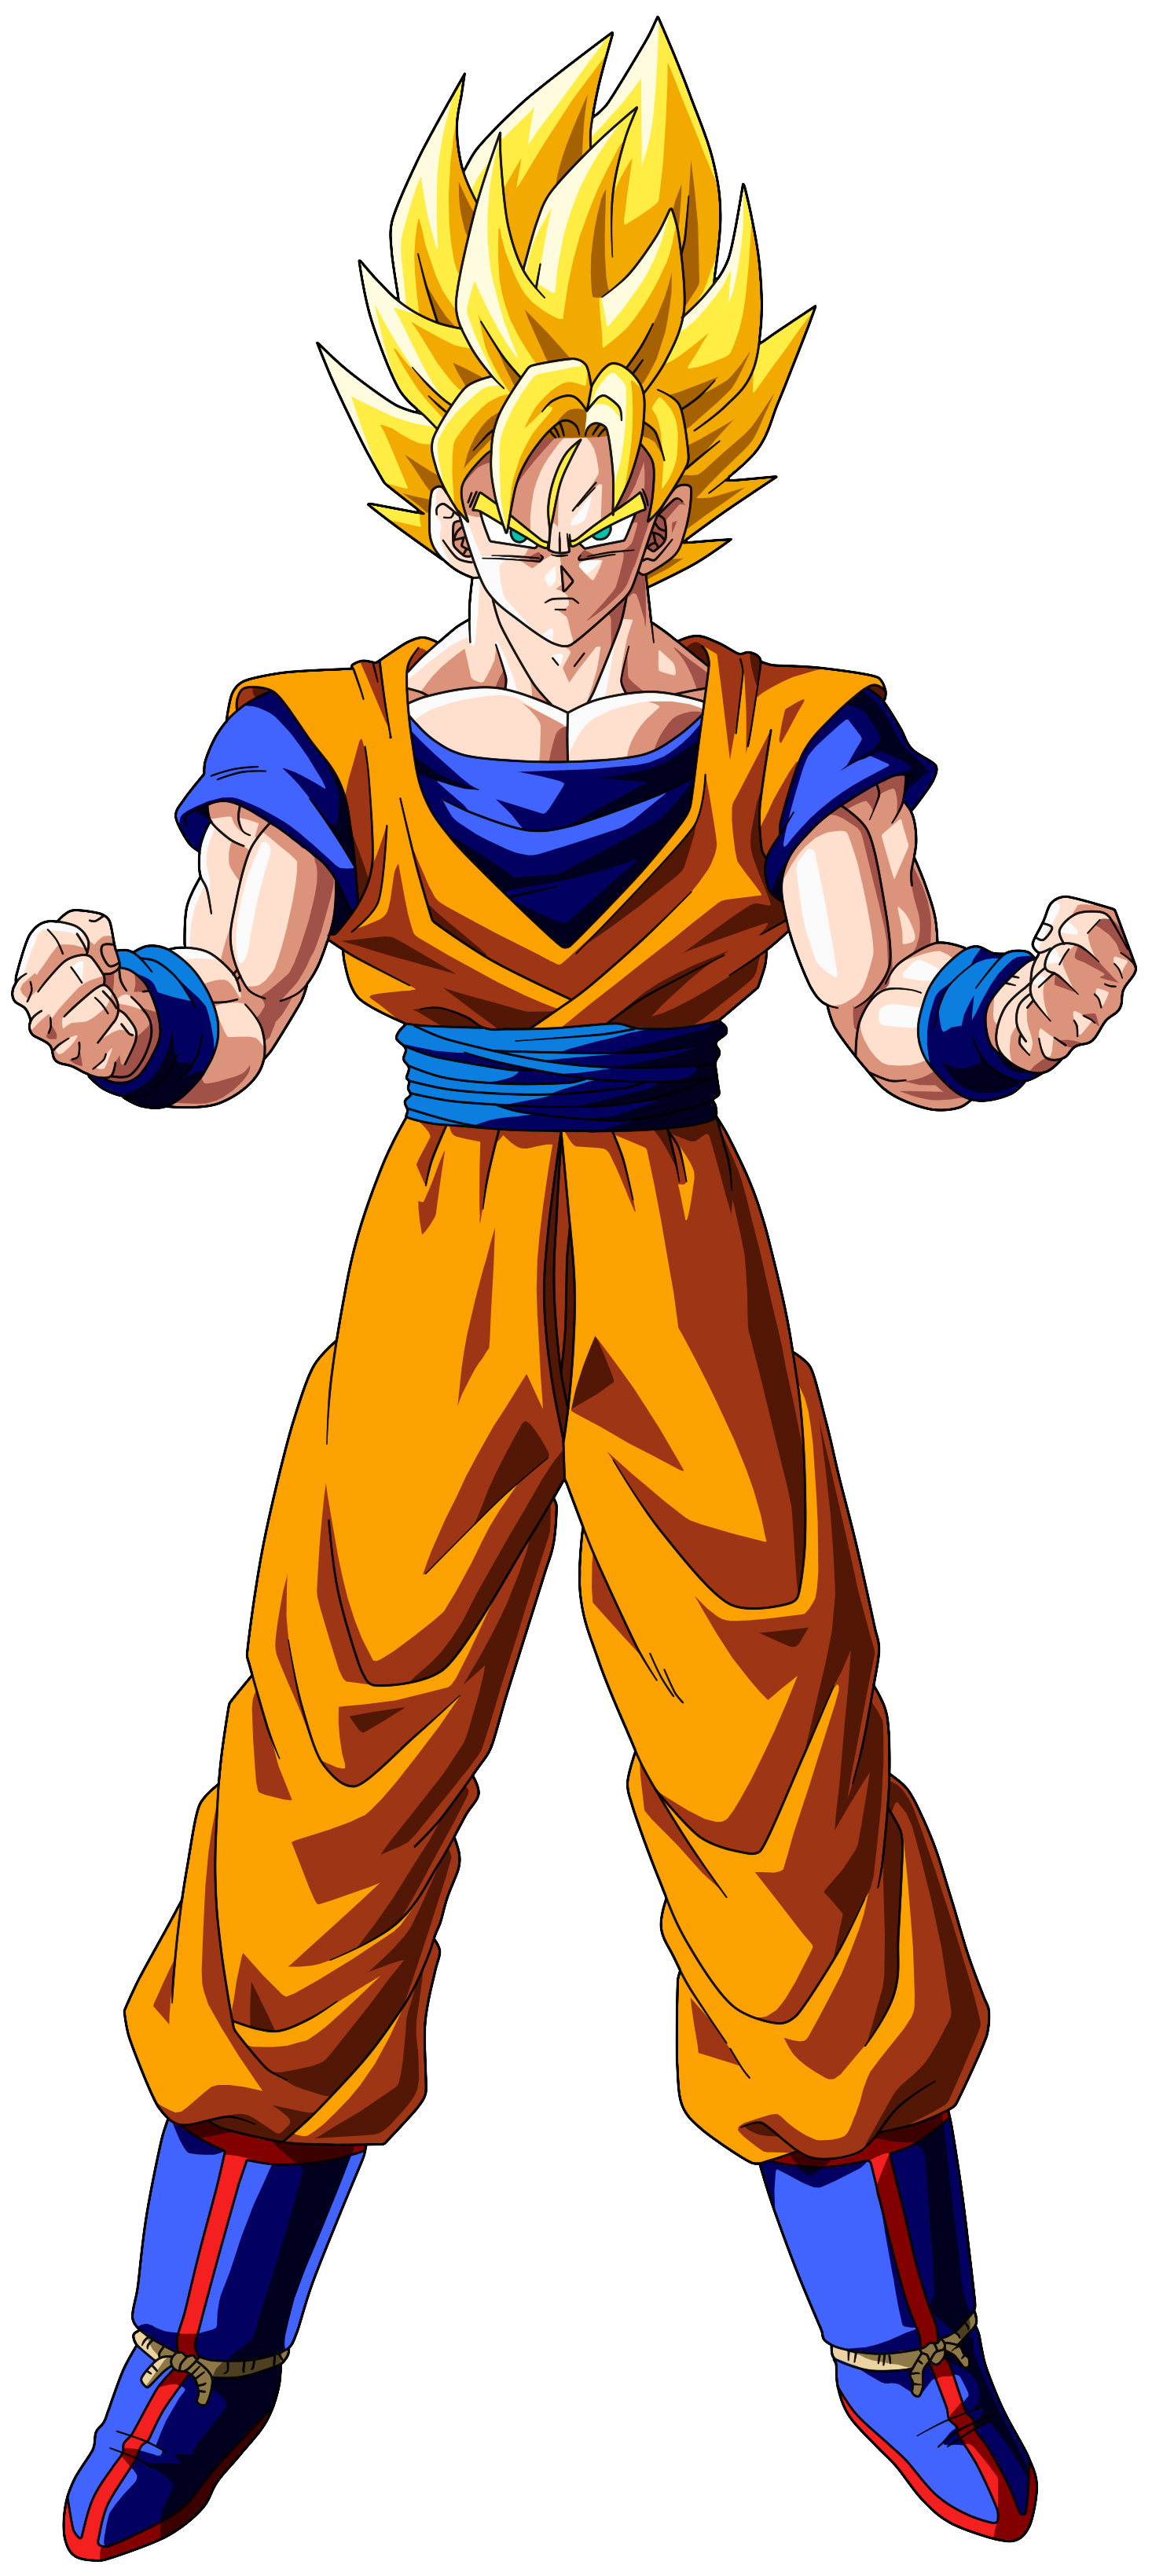 Super saiyan 1 goku google search m s ssj goku pinterest drag - Super sayen 10 ...